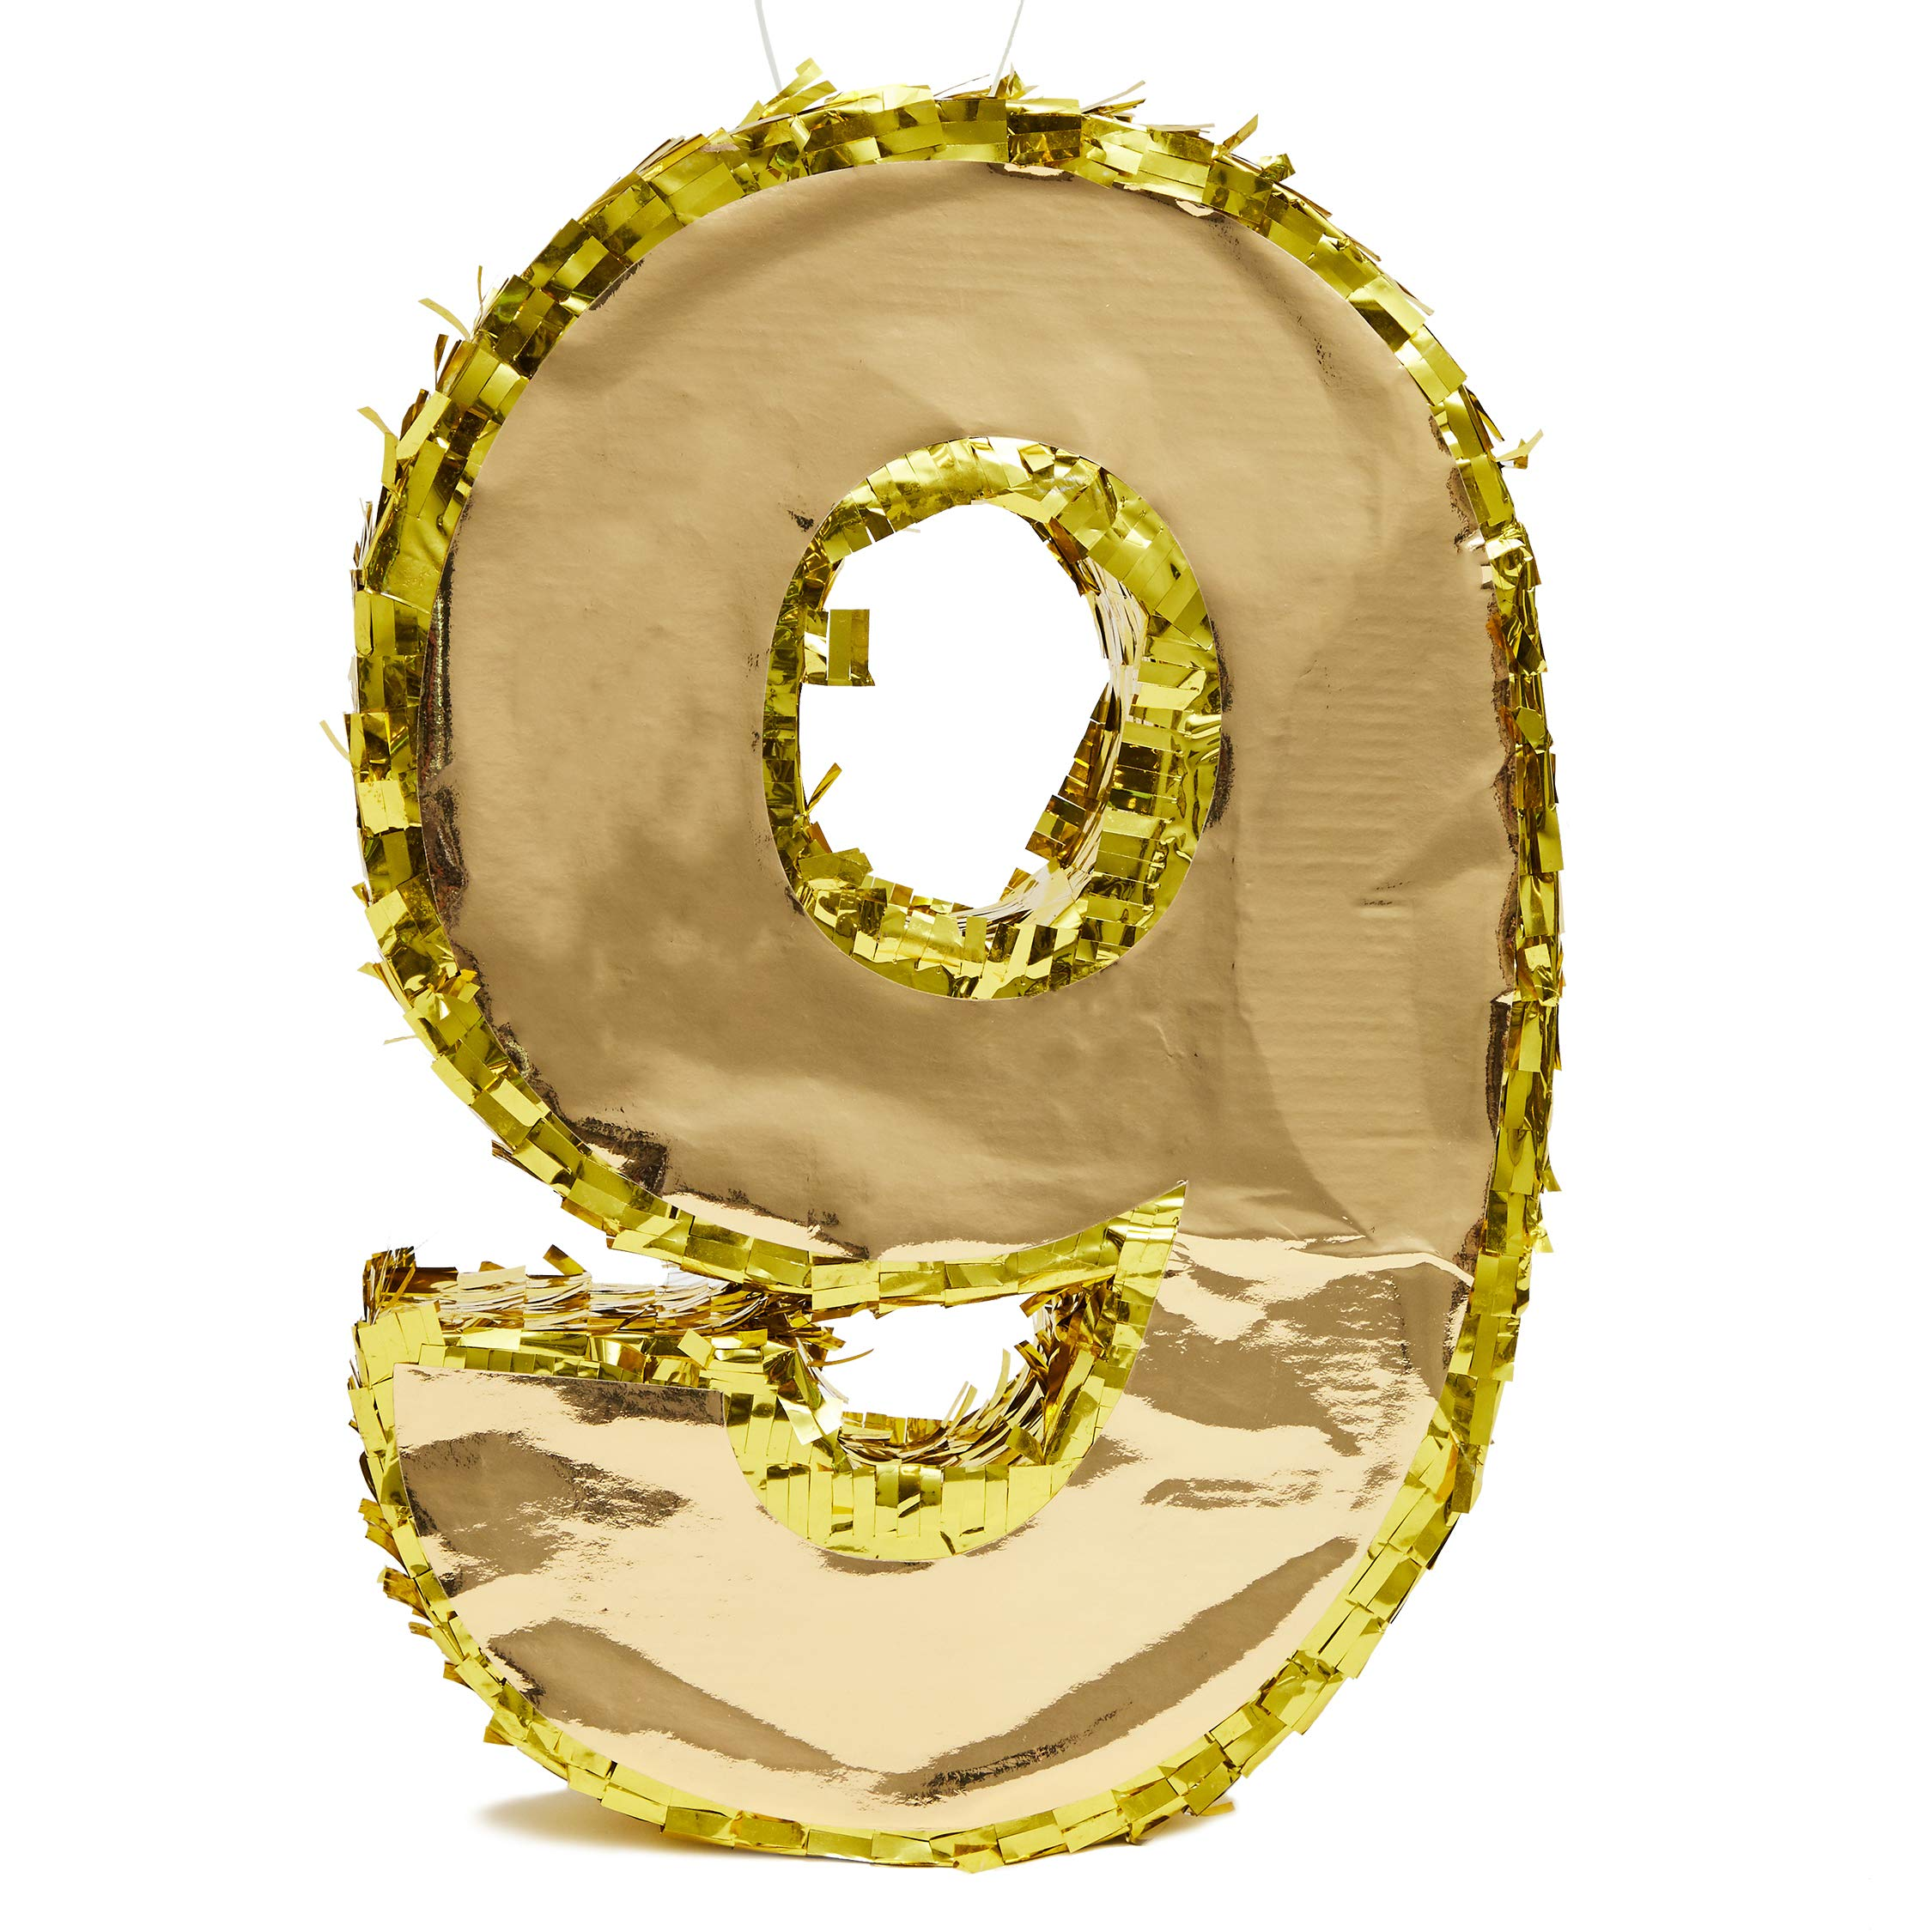 Juvale Small Number 9 Gold Foil Pinata, Ninth Birthday Party Supplies, 15.5 x 11 x 3 Inches by Juvale